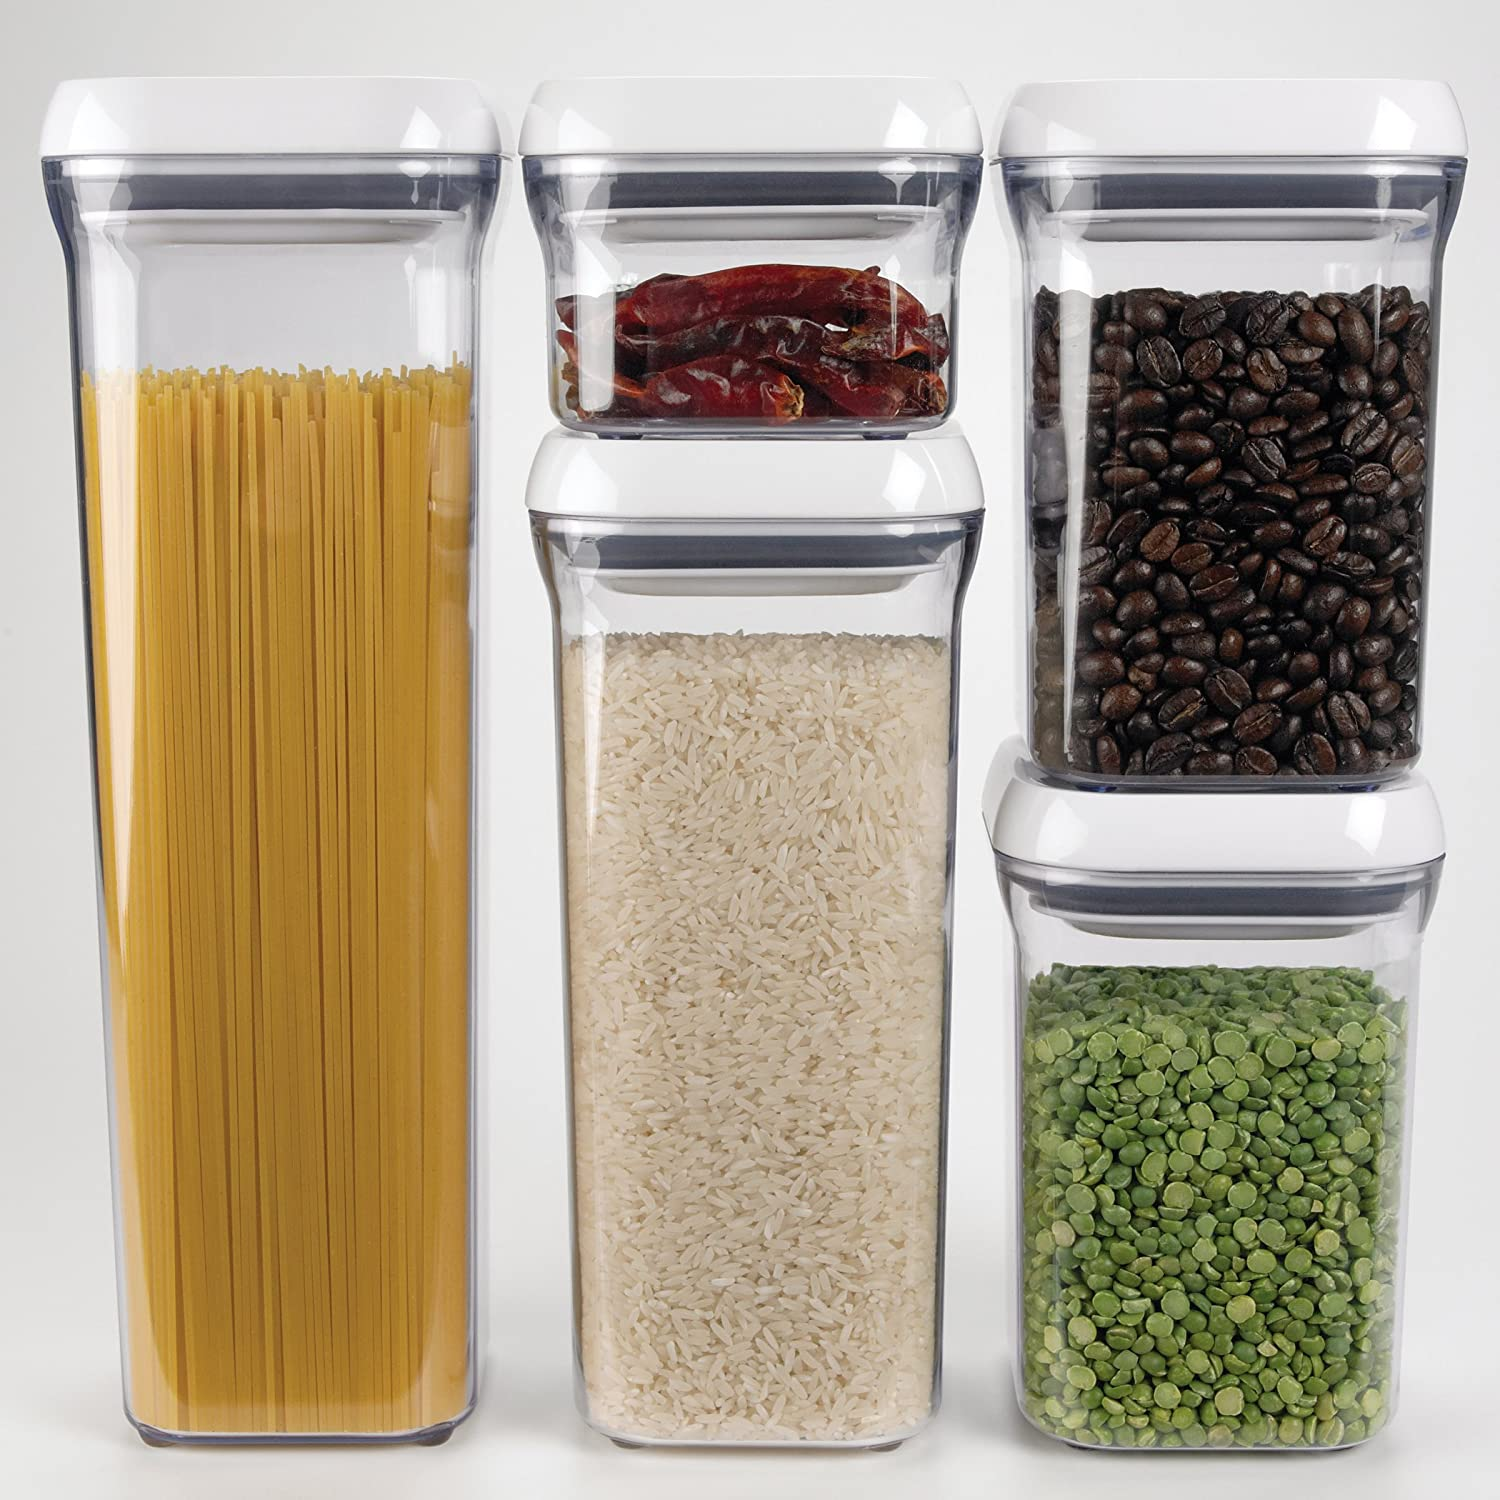 These OXO containers are the best at keeping items fresh